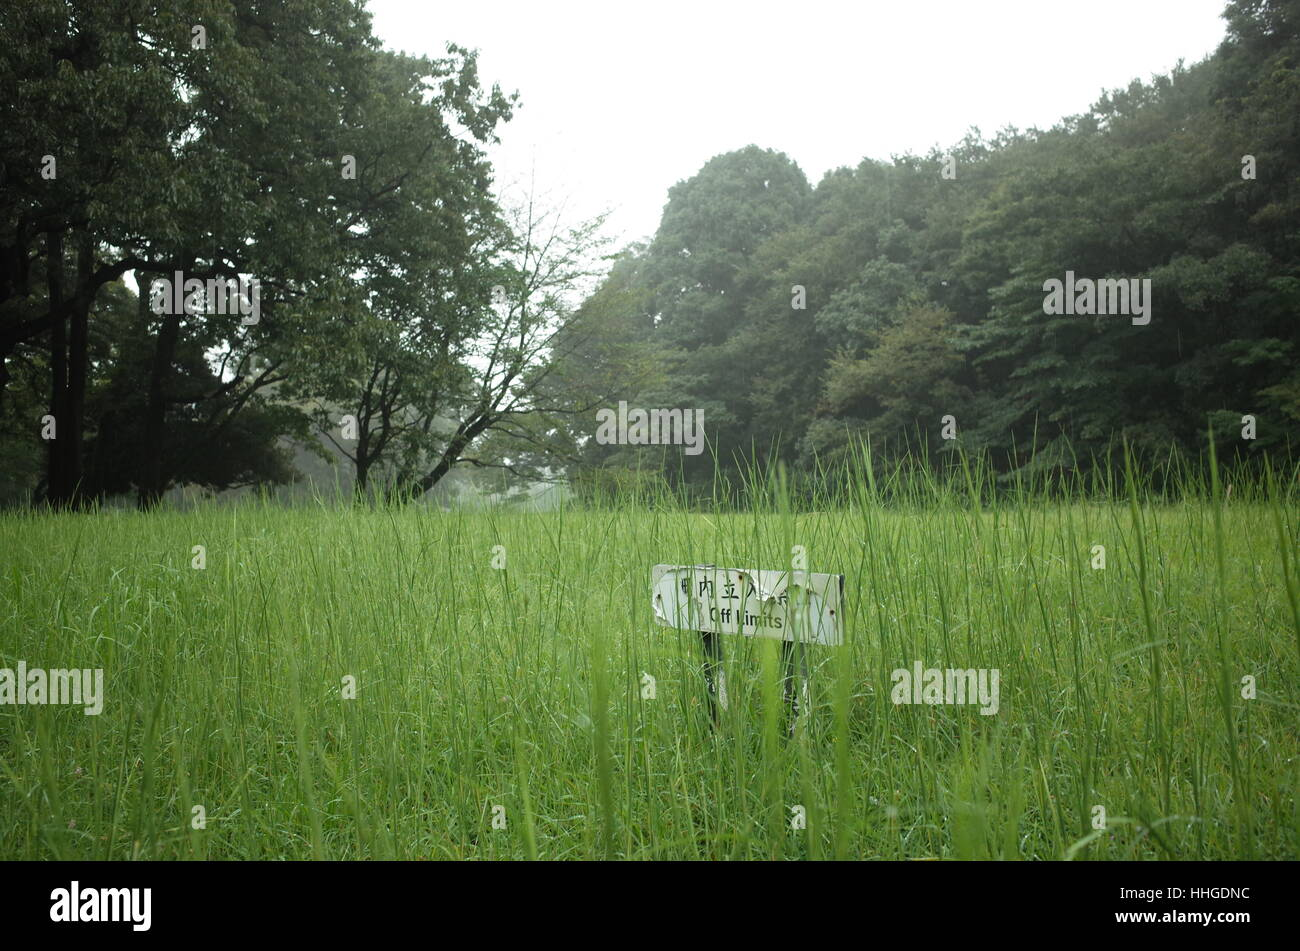 Over-grown grassy landscape in park with deteriorated sign that reads 'Off Limits' in Japanese and English. - Stock Image